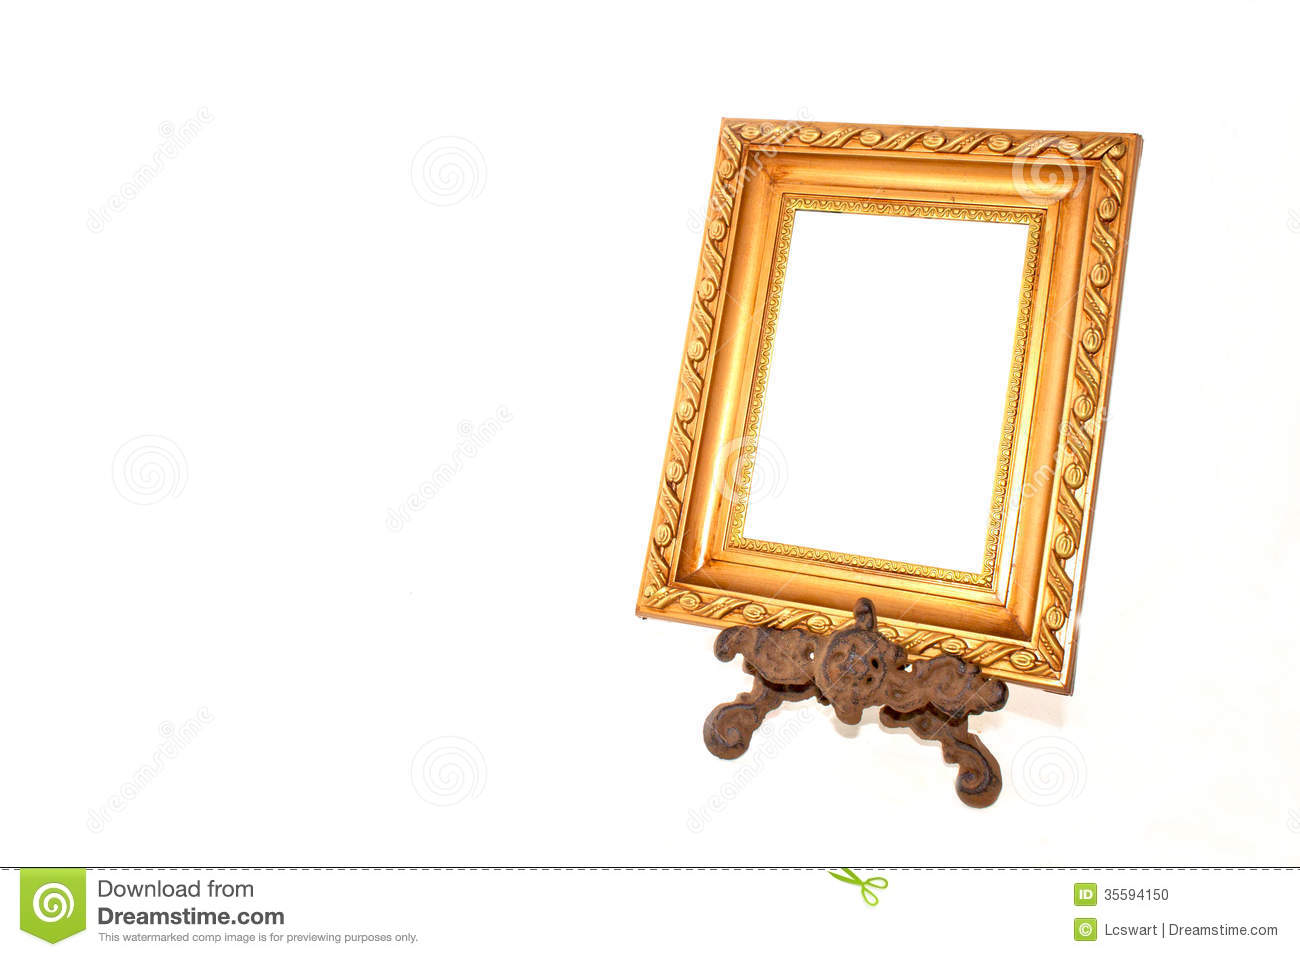 Patterned Gold Frame On Vintage Metal Stand Stock Photo